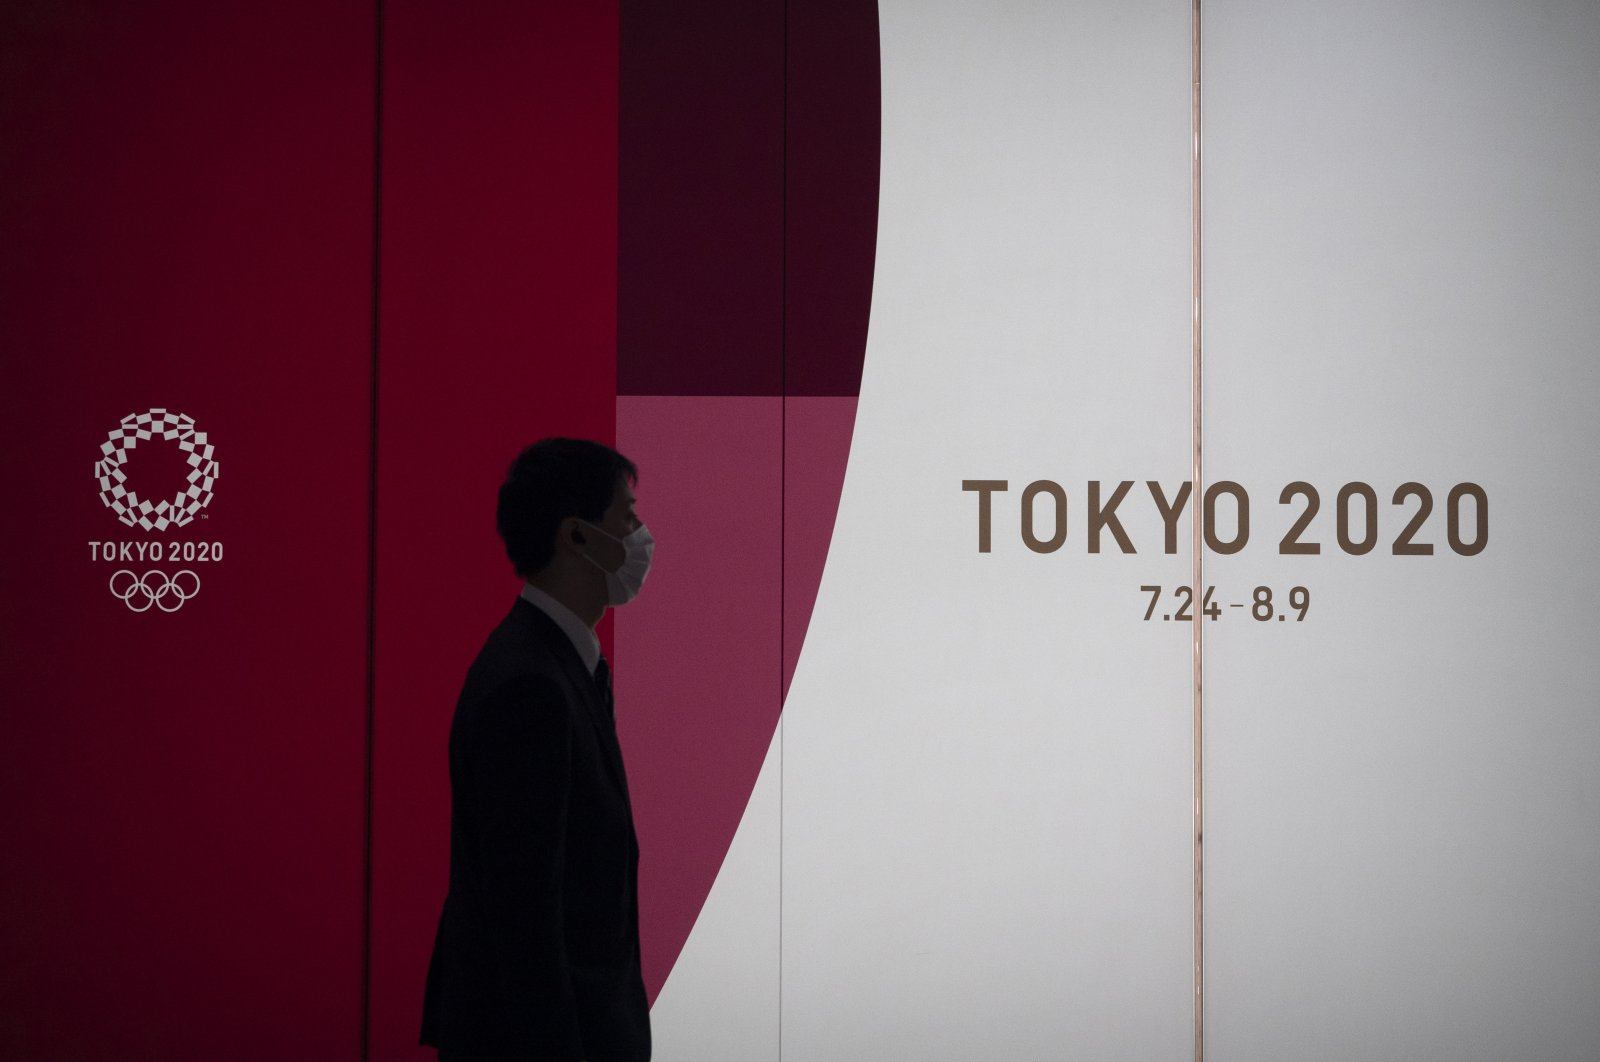 A man walks past a large display promoting the Tokyo 2020 Olympics, in Tokyo, Monday, March 23, 2020. (AP Photo)